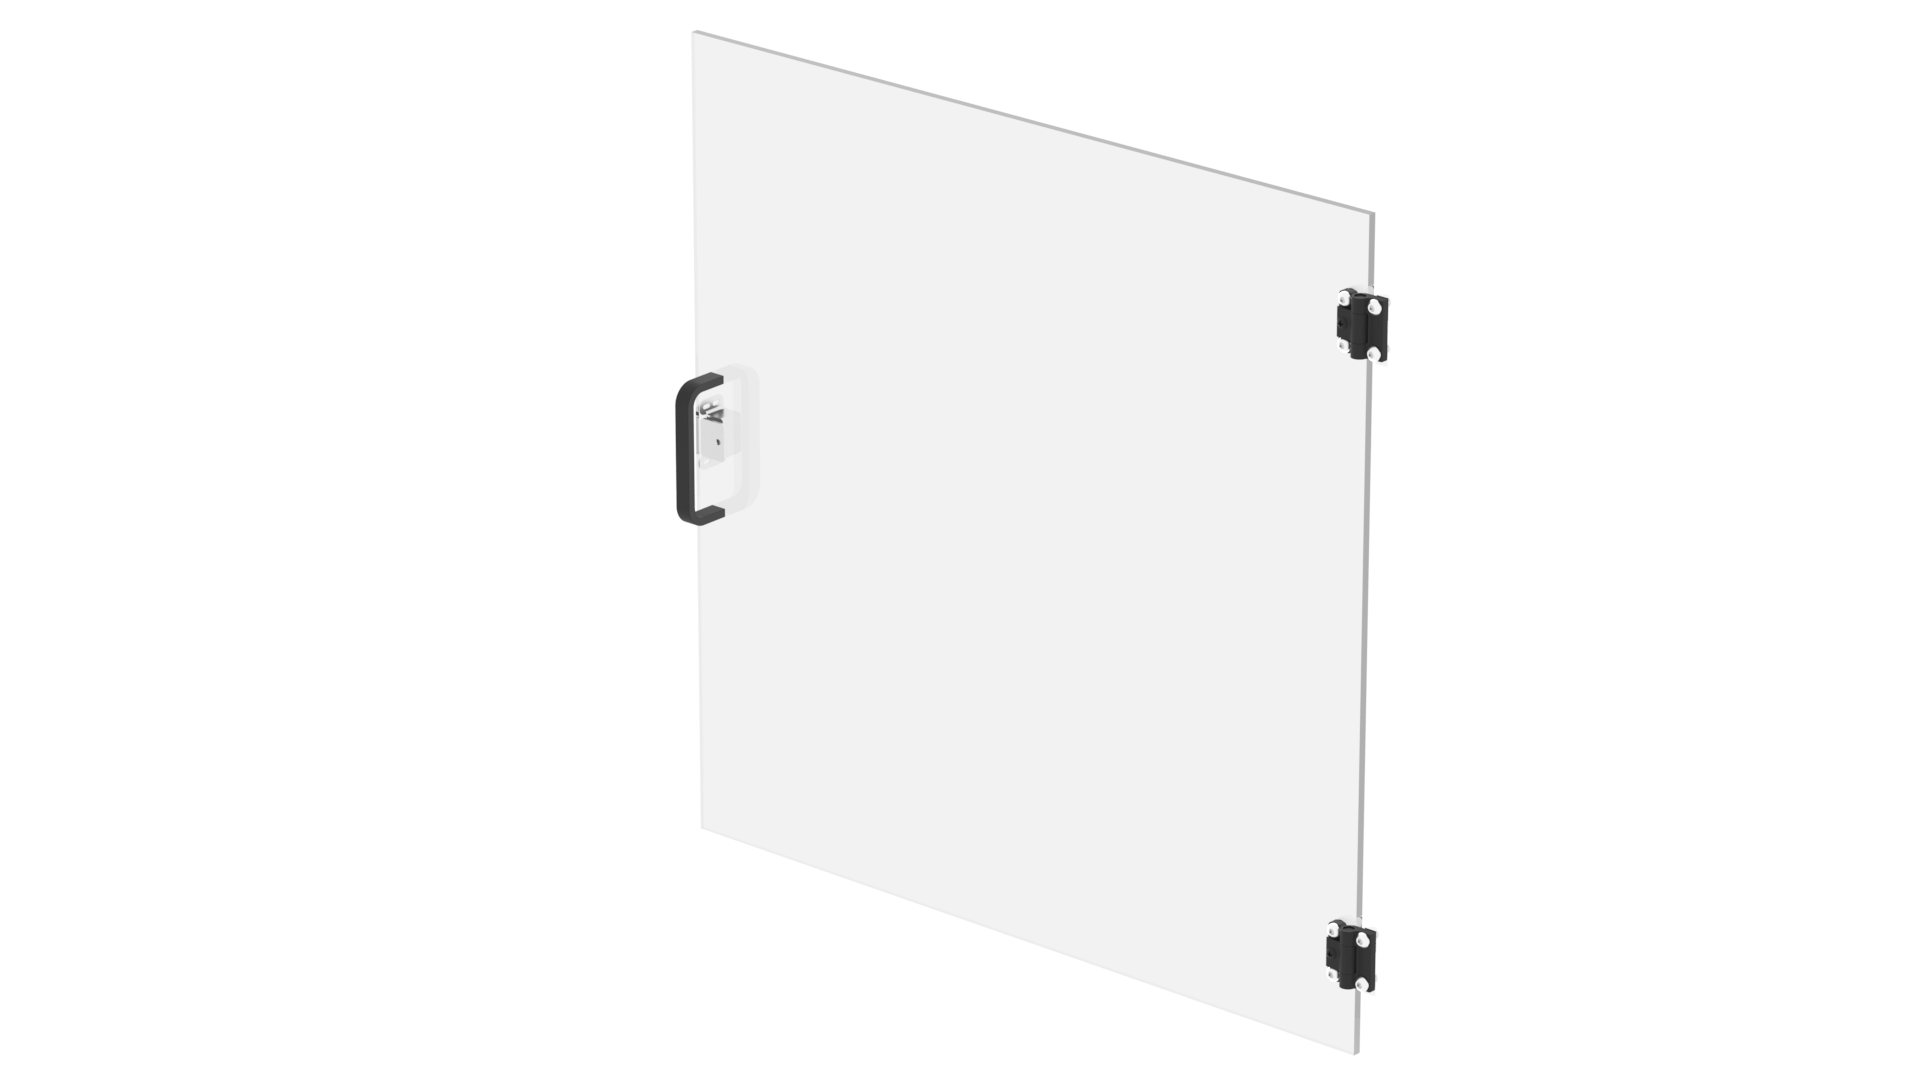 Assemble the door by drilling holes for the handle and hinges, then screwing them on. Attach the magnetic latch plate with double-sided tape. If you don't like this handle, there are many other choices!